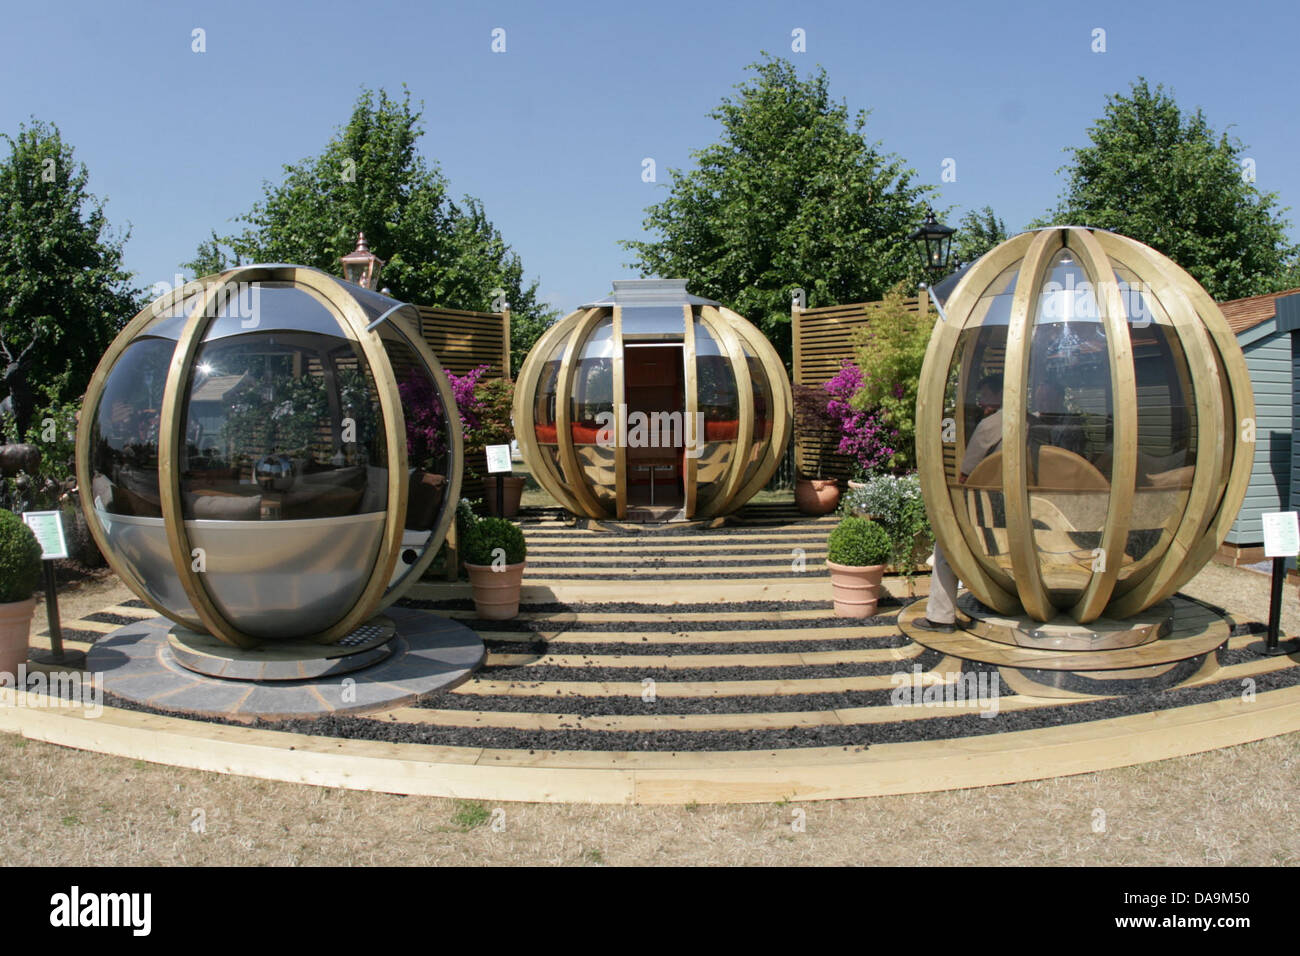 London uk 8th july 2013 garden pods at rhs hampton for Garden pods to live in